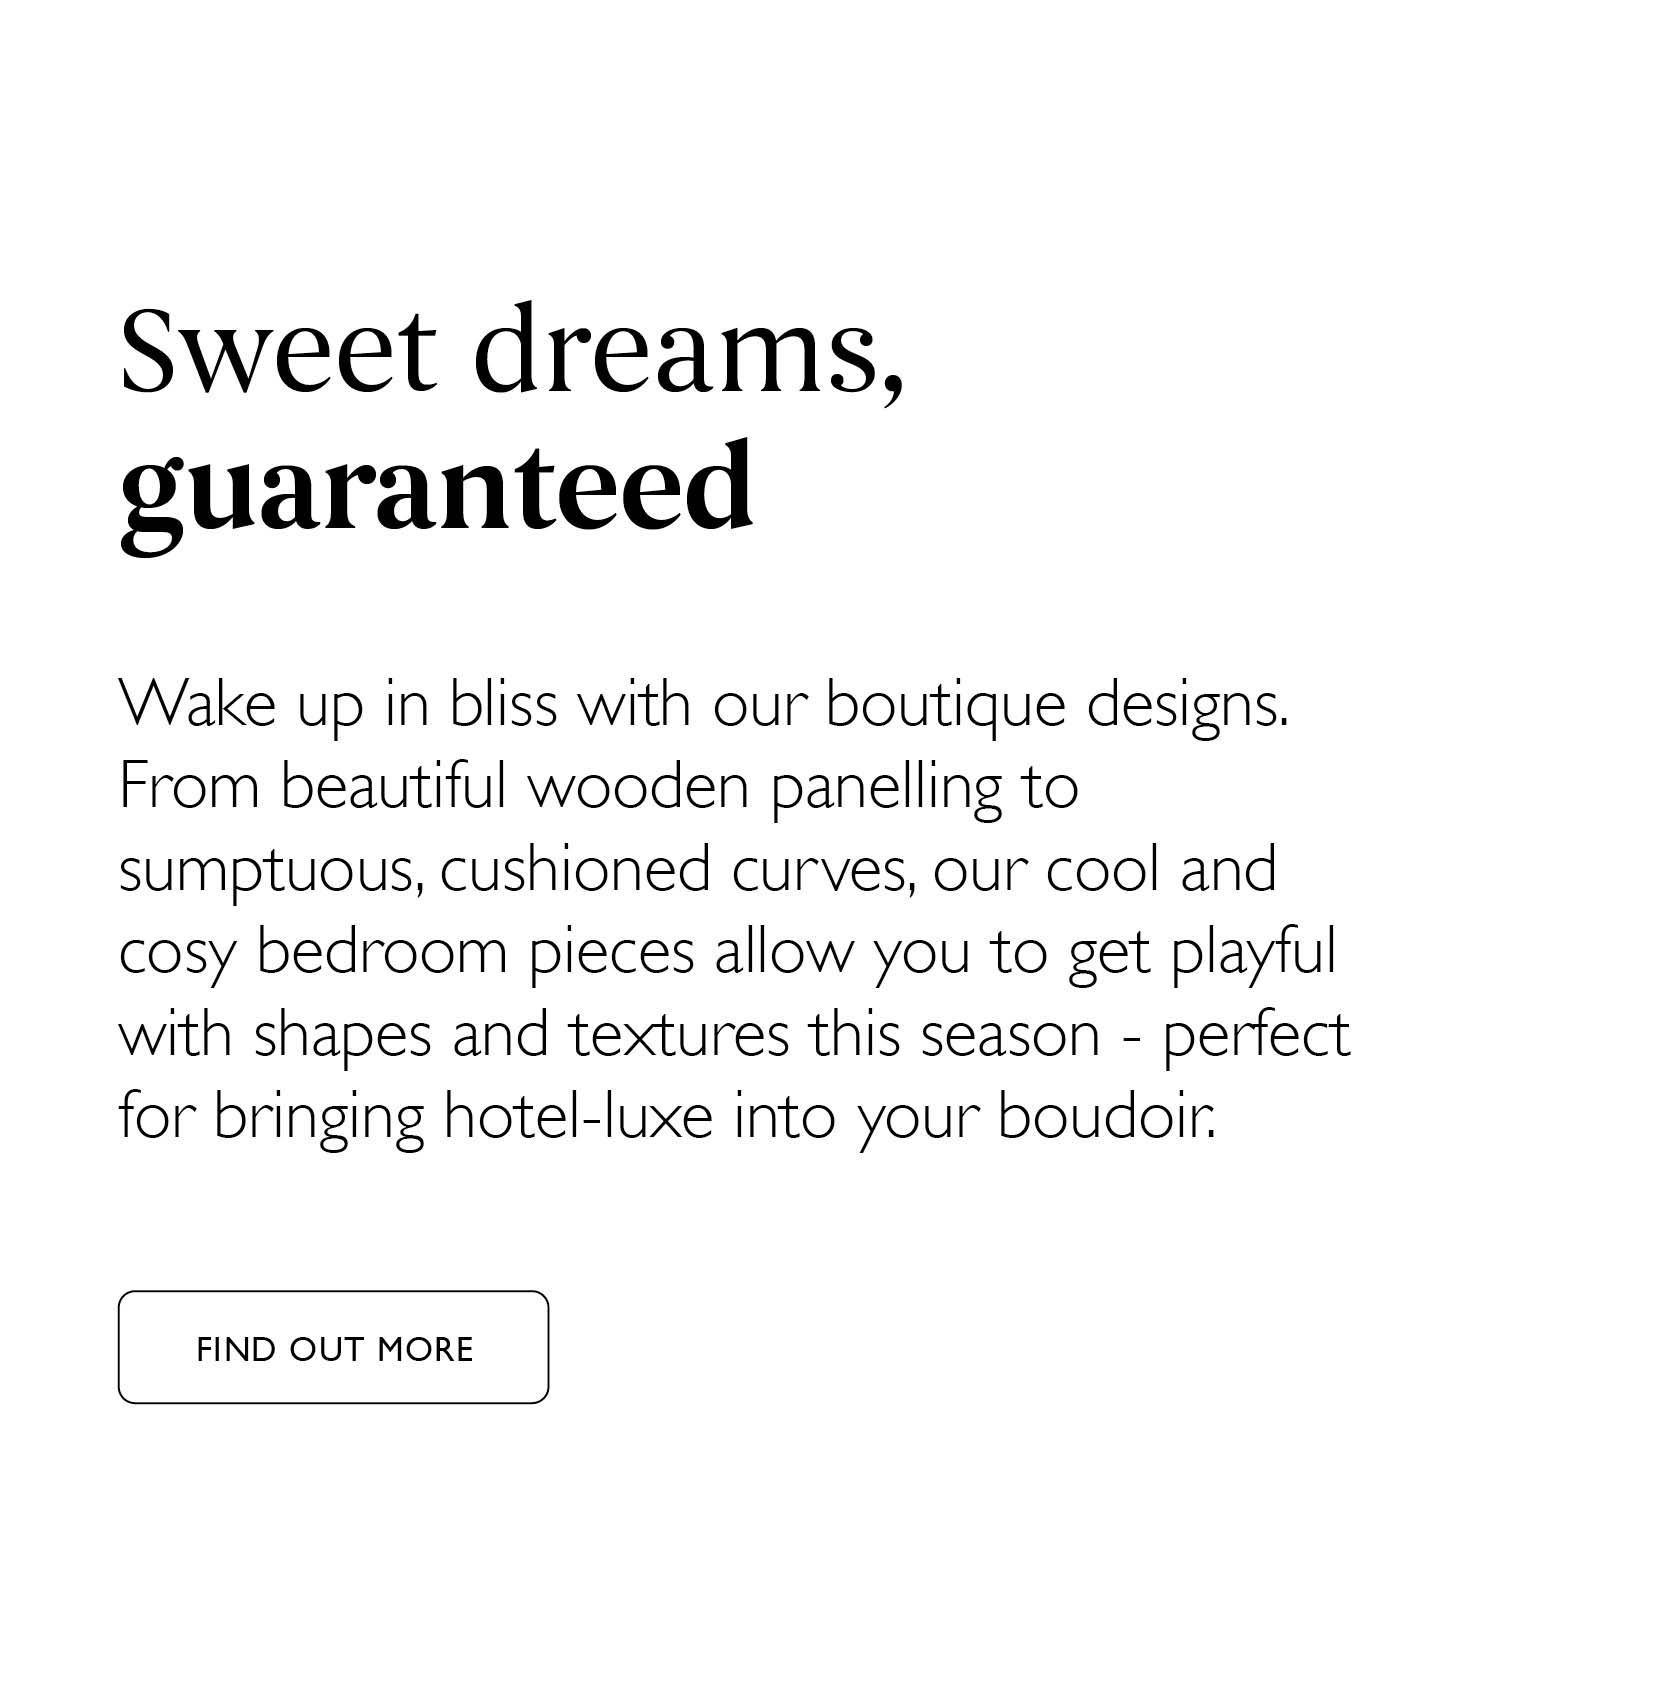 Sweet dreams guaranteed - Wake up to bliss with our boutique designs. Click here to find out more